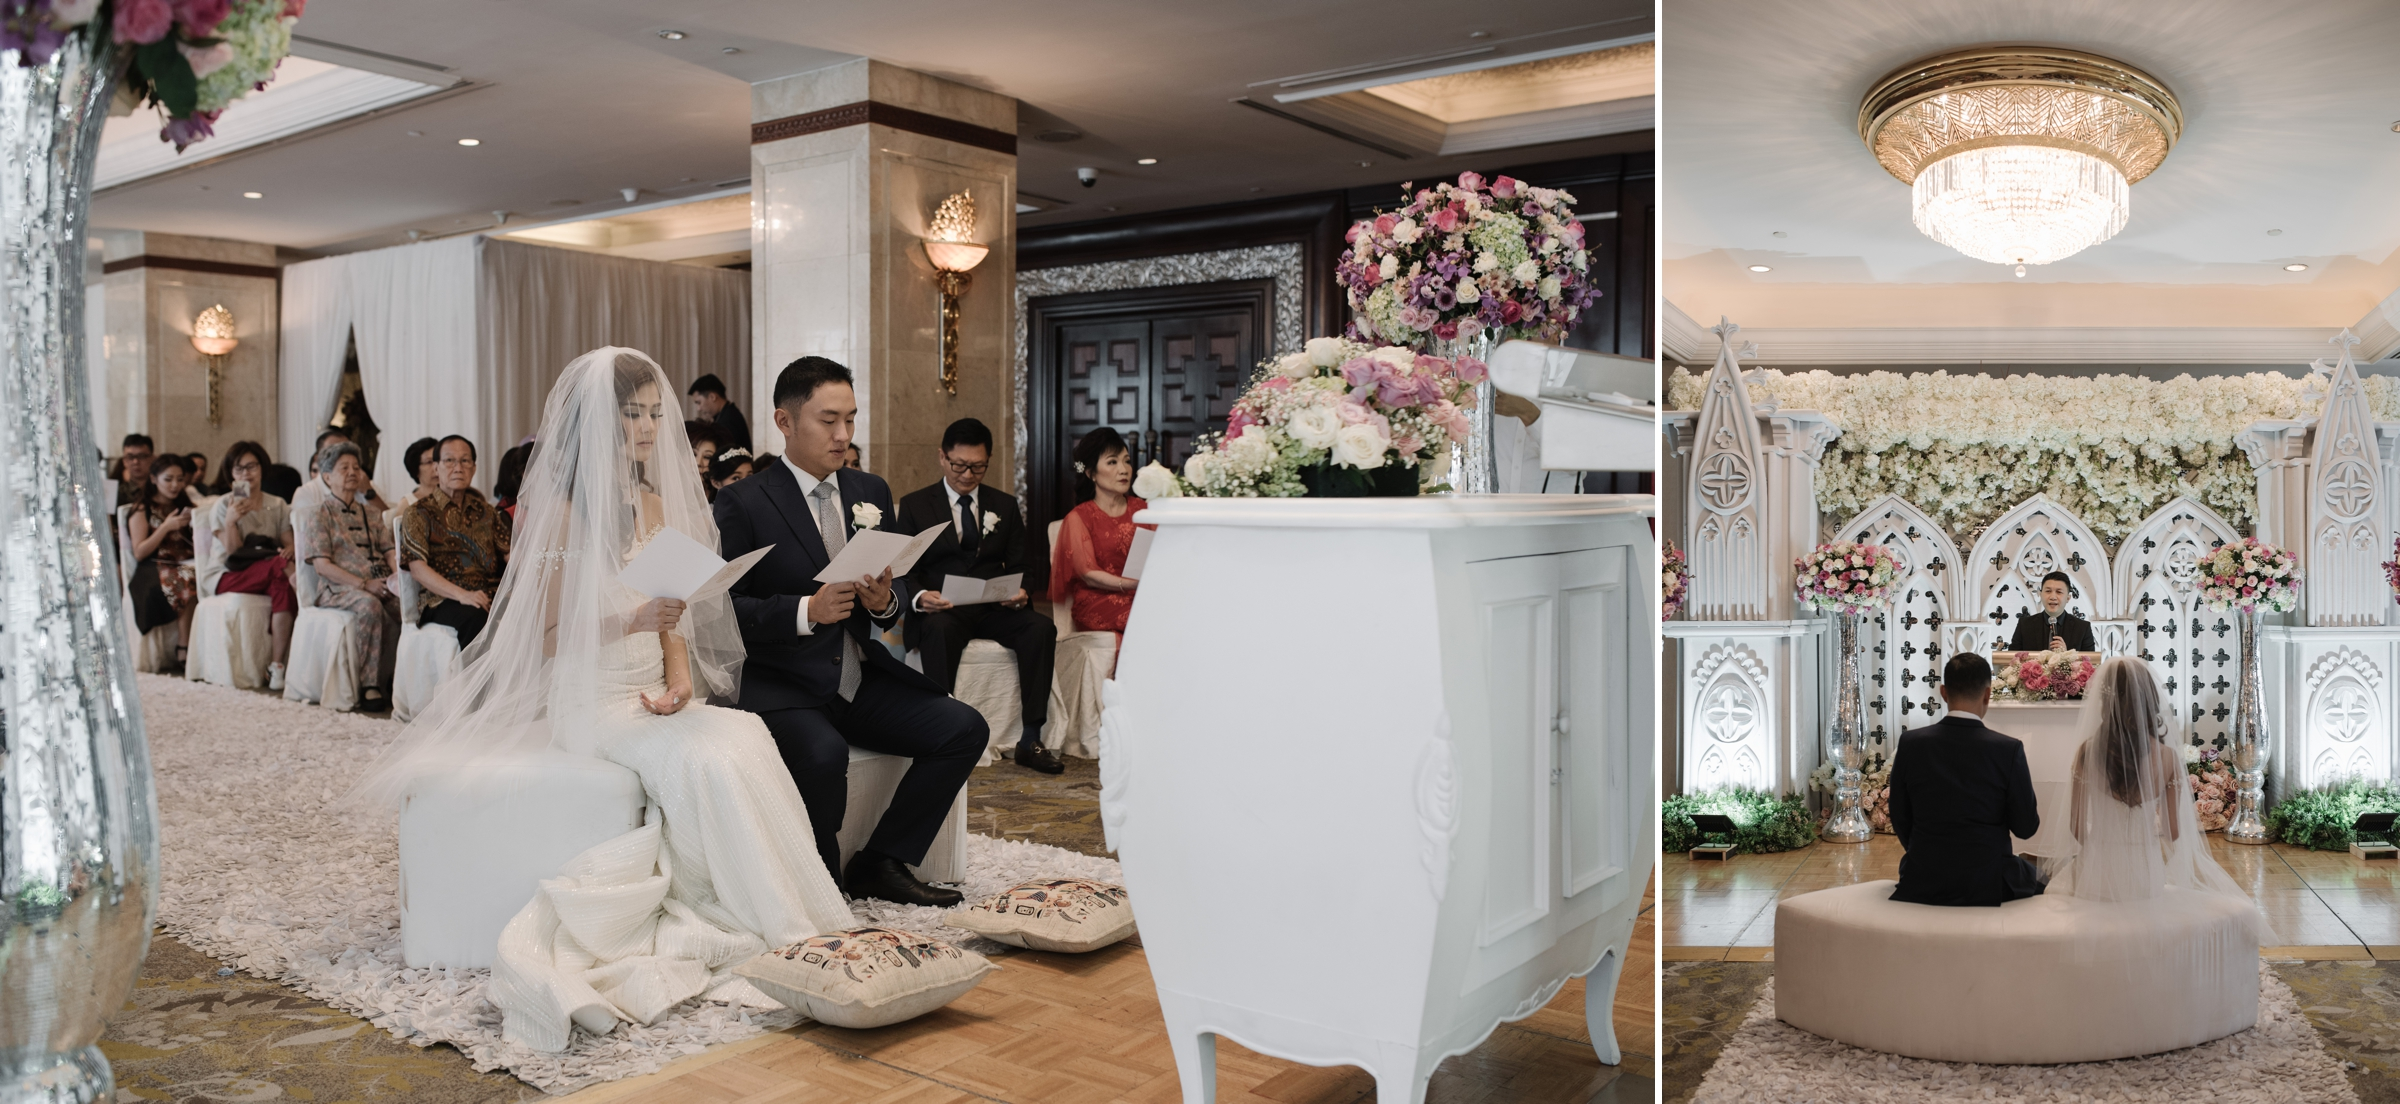 livia-reagan-wedding-raffles-jakarta-pyara-photo-gejoo 32.jpg